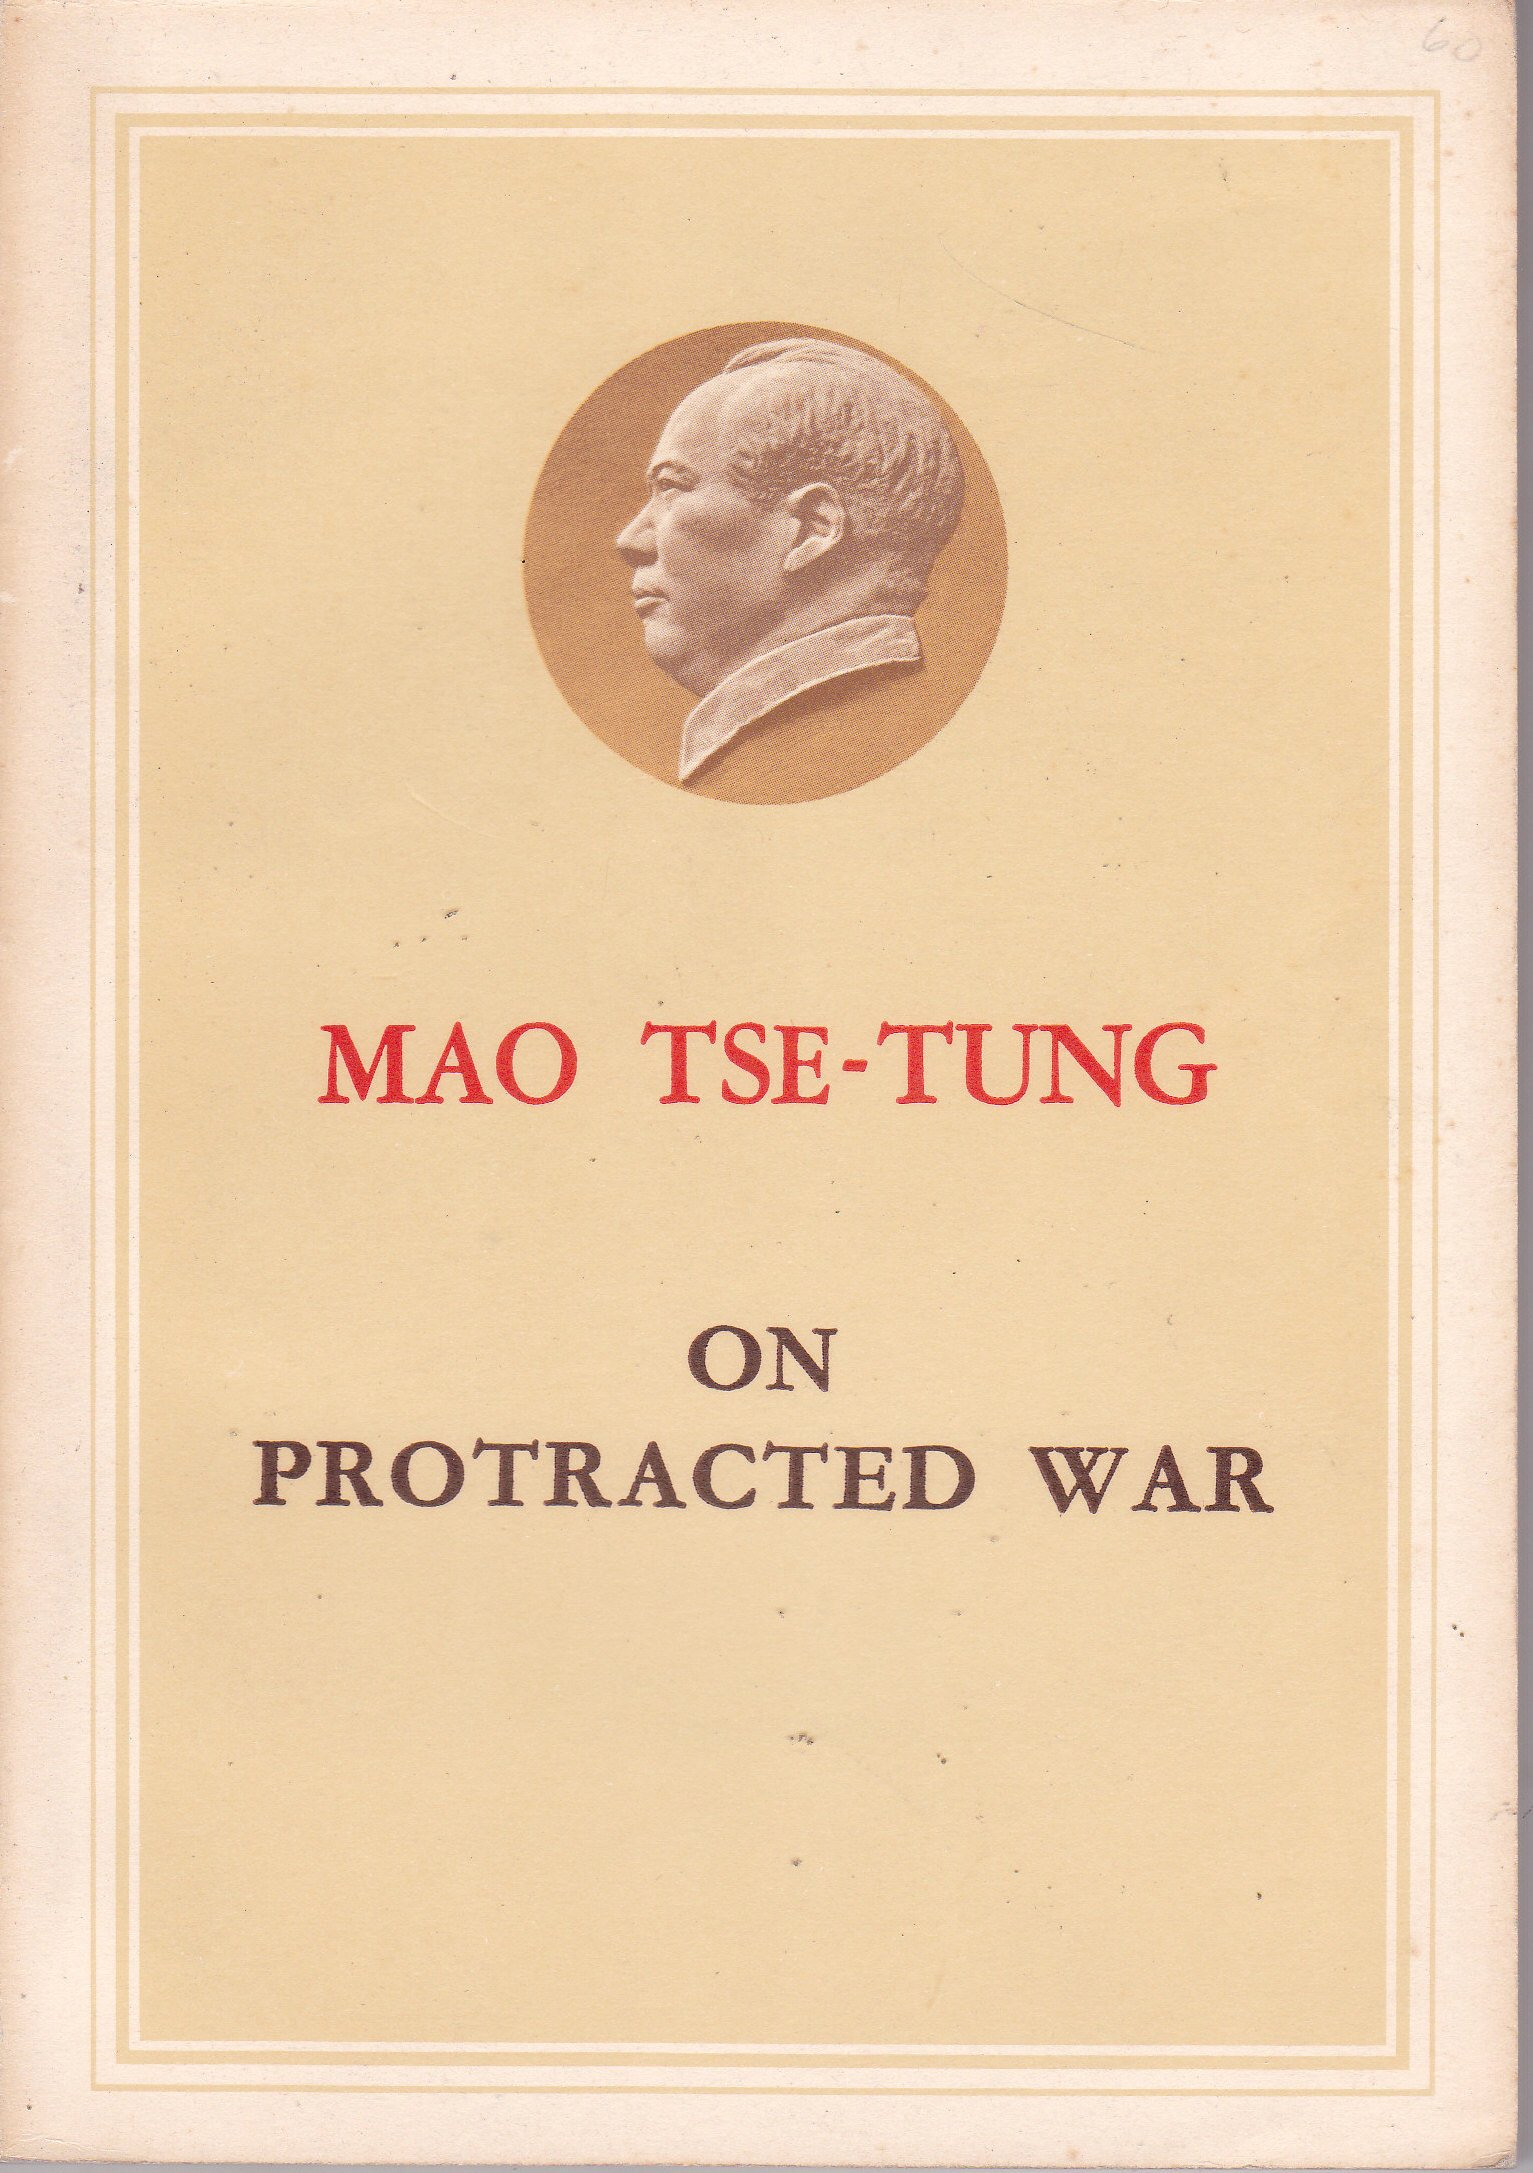 Mao Tse-Tung on Protracted War by Foreign Languages Press, Peking